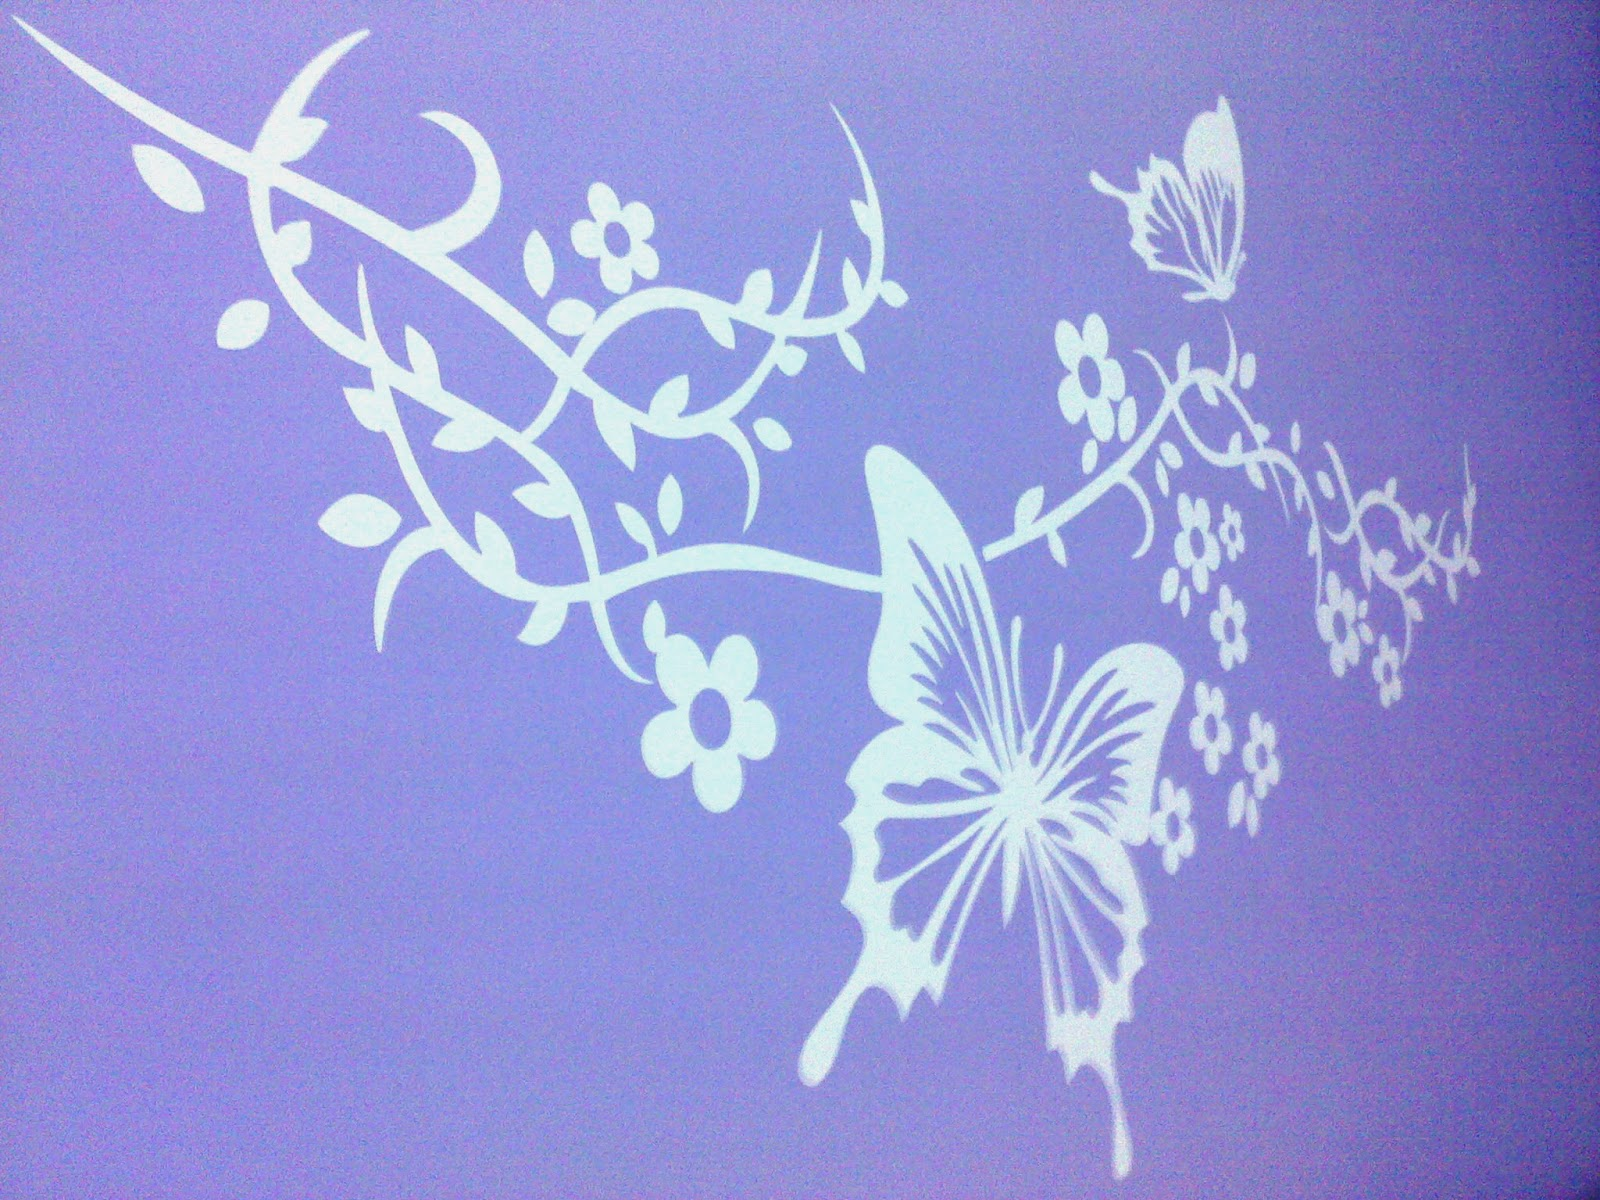 Bedroom wall stickers, Mumbai, India